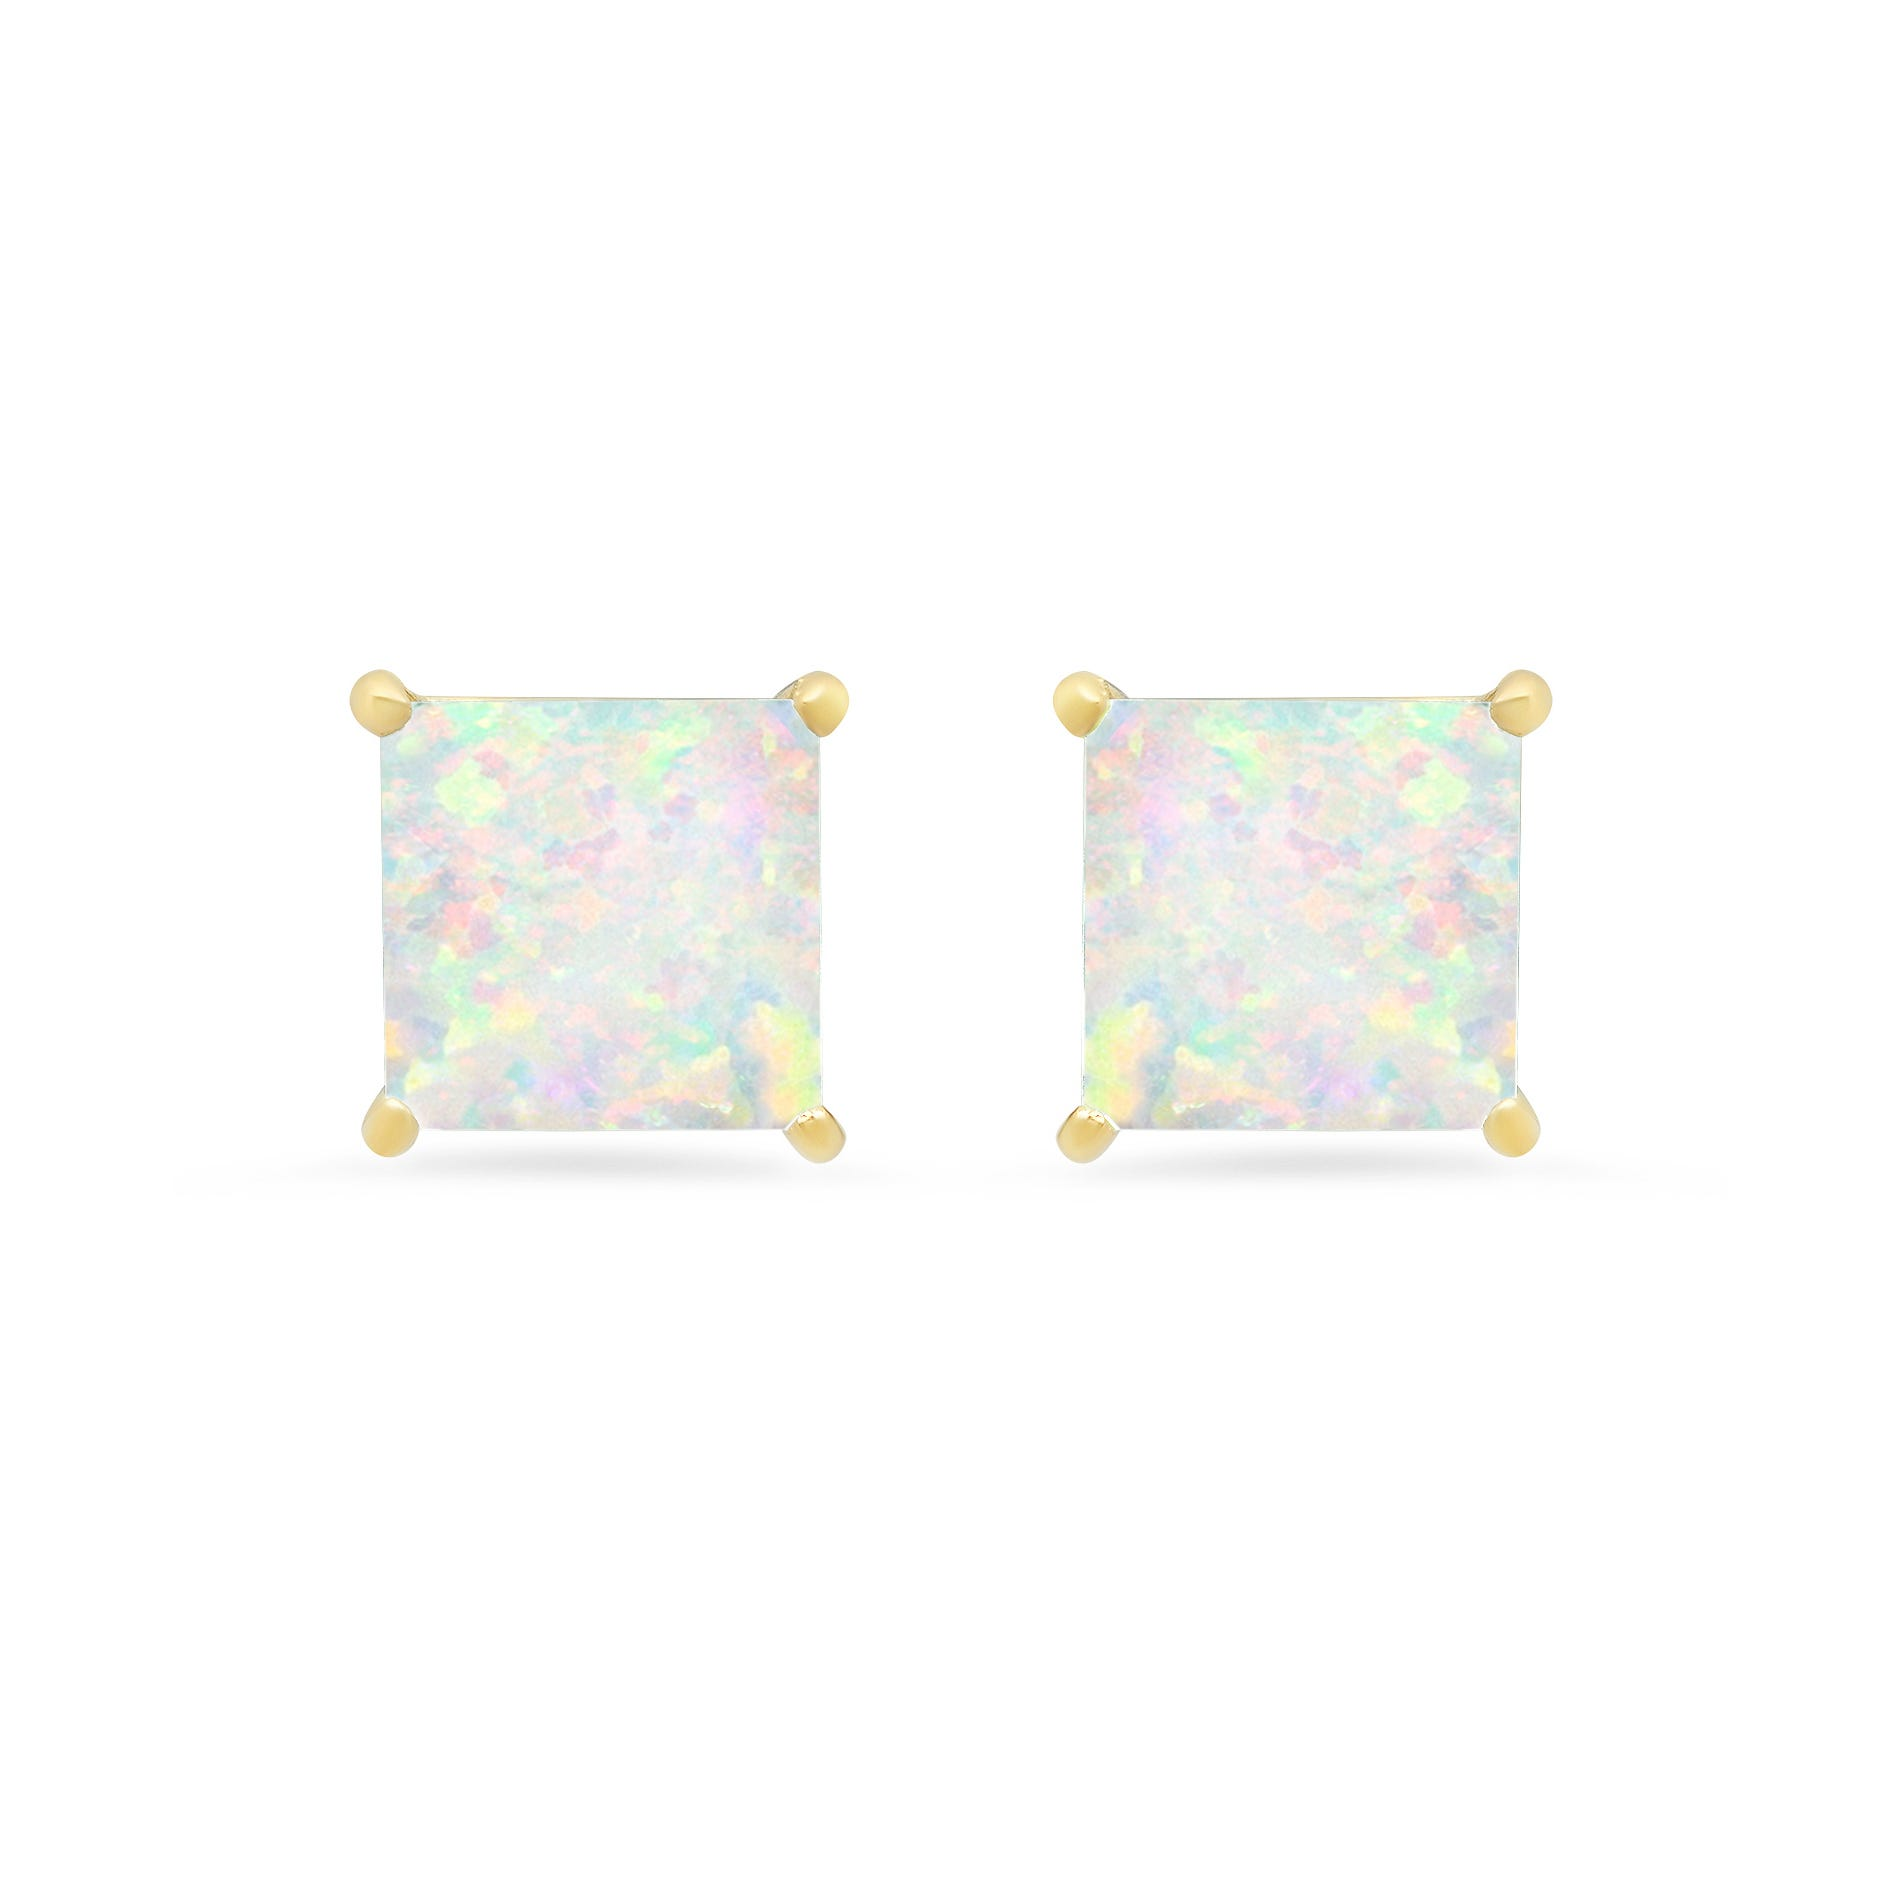 Princess-Cut Created Opal Solitaire Stud Earrings in 14k Yellow Gold